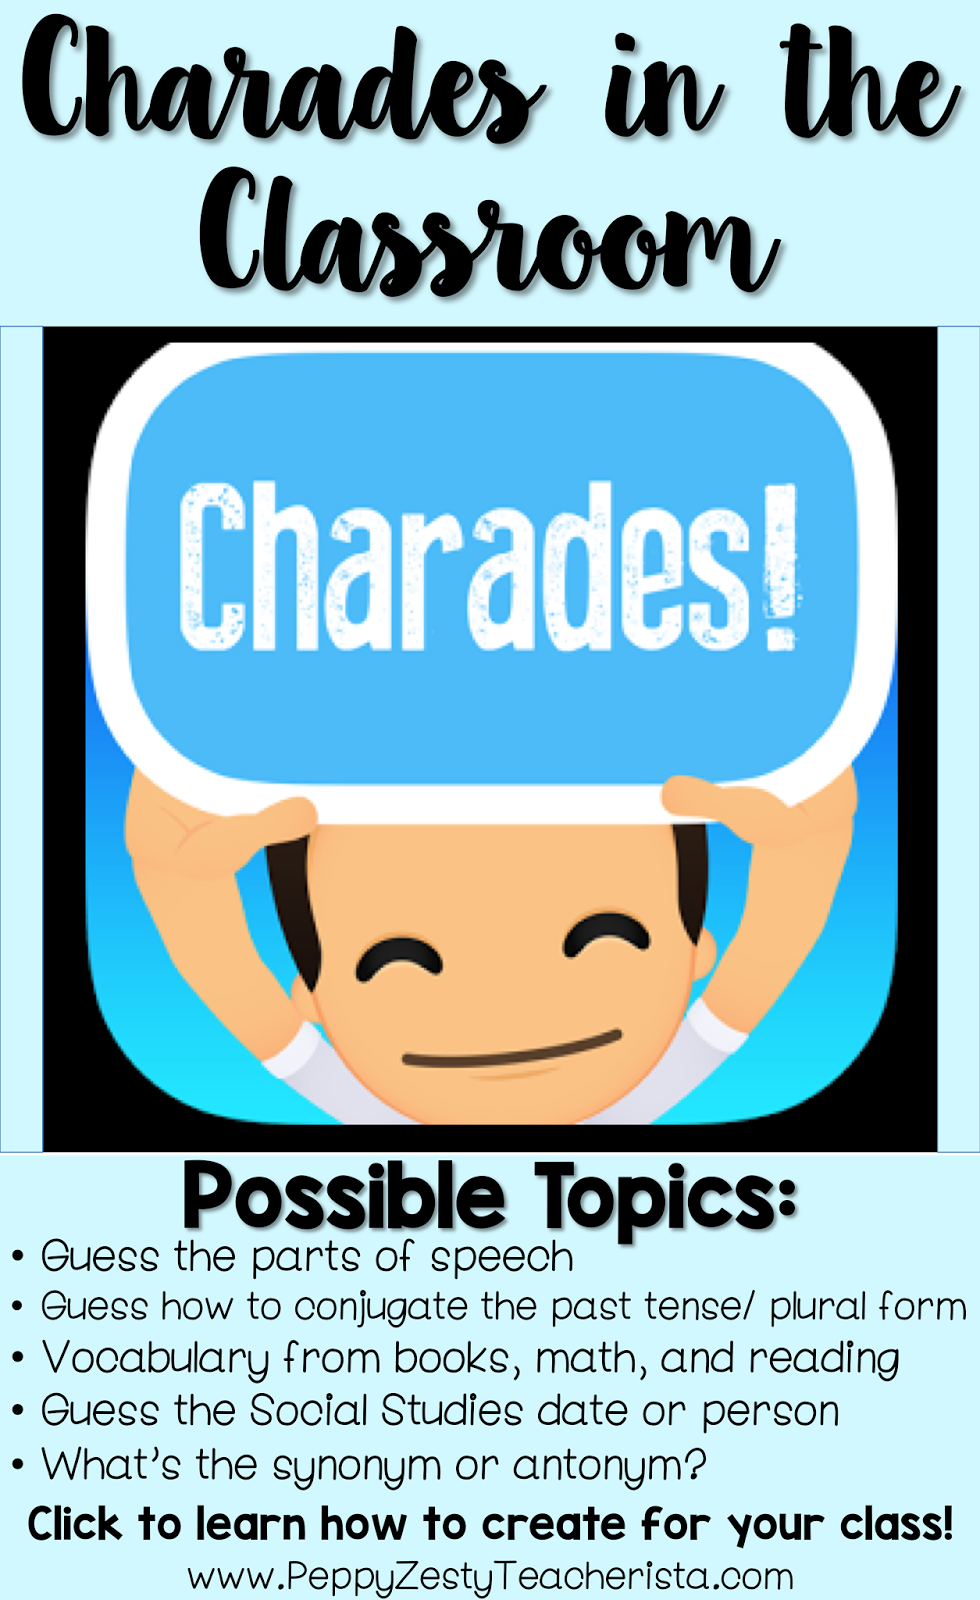 Technology in the Classroom: Charades App – Peppy Zesty Teacherista